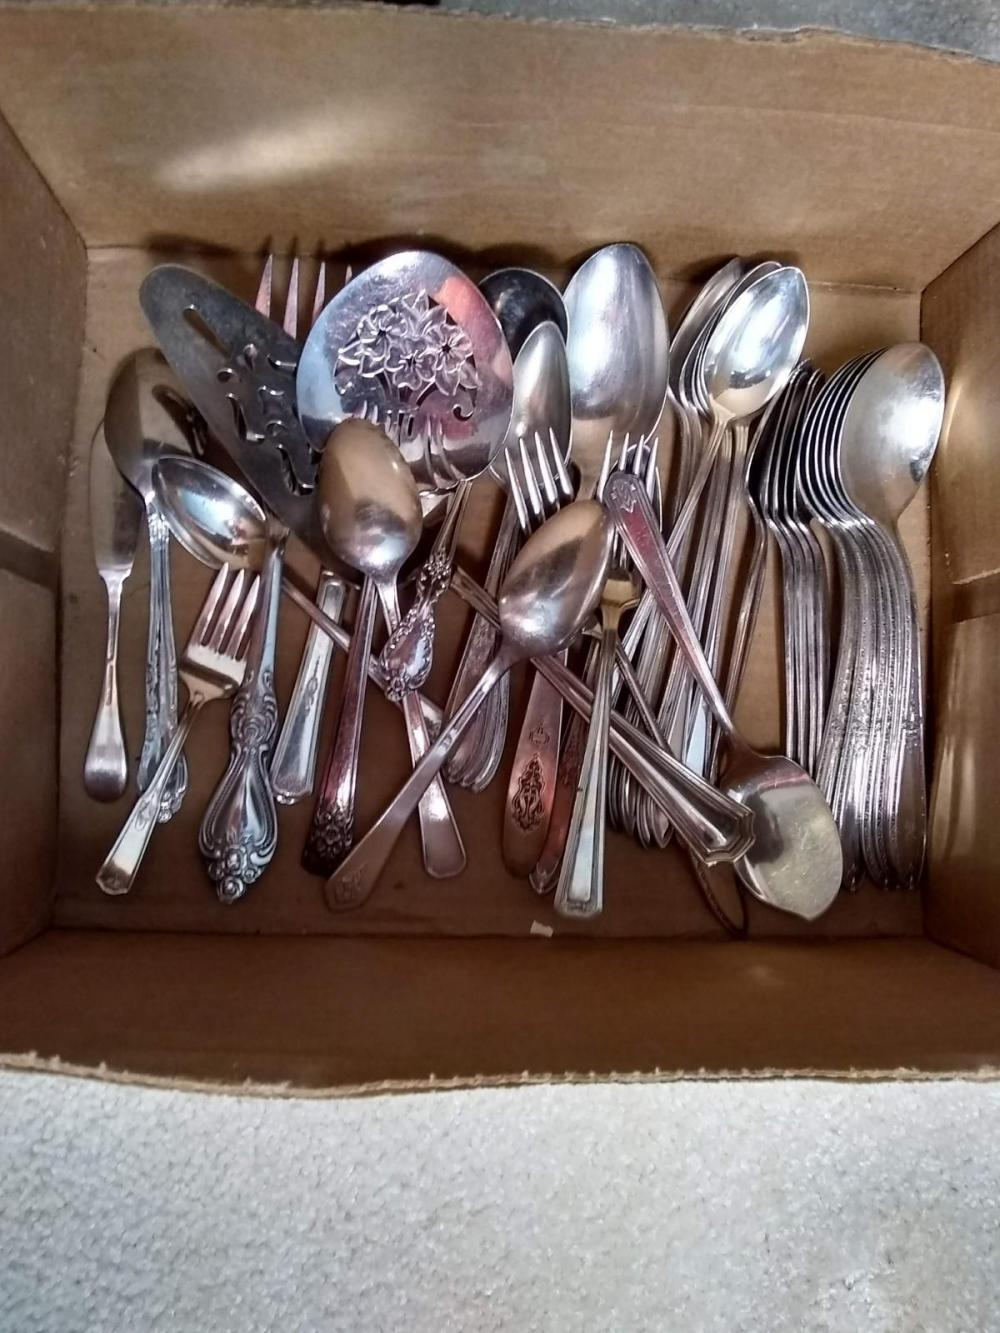 Assorted Silver-plated Flatware